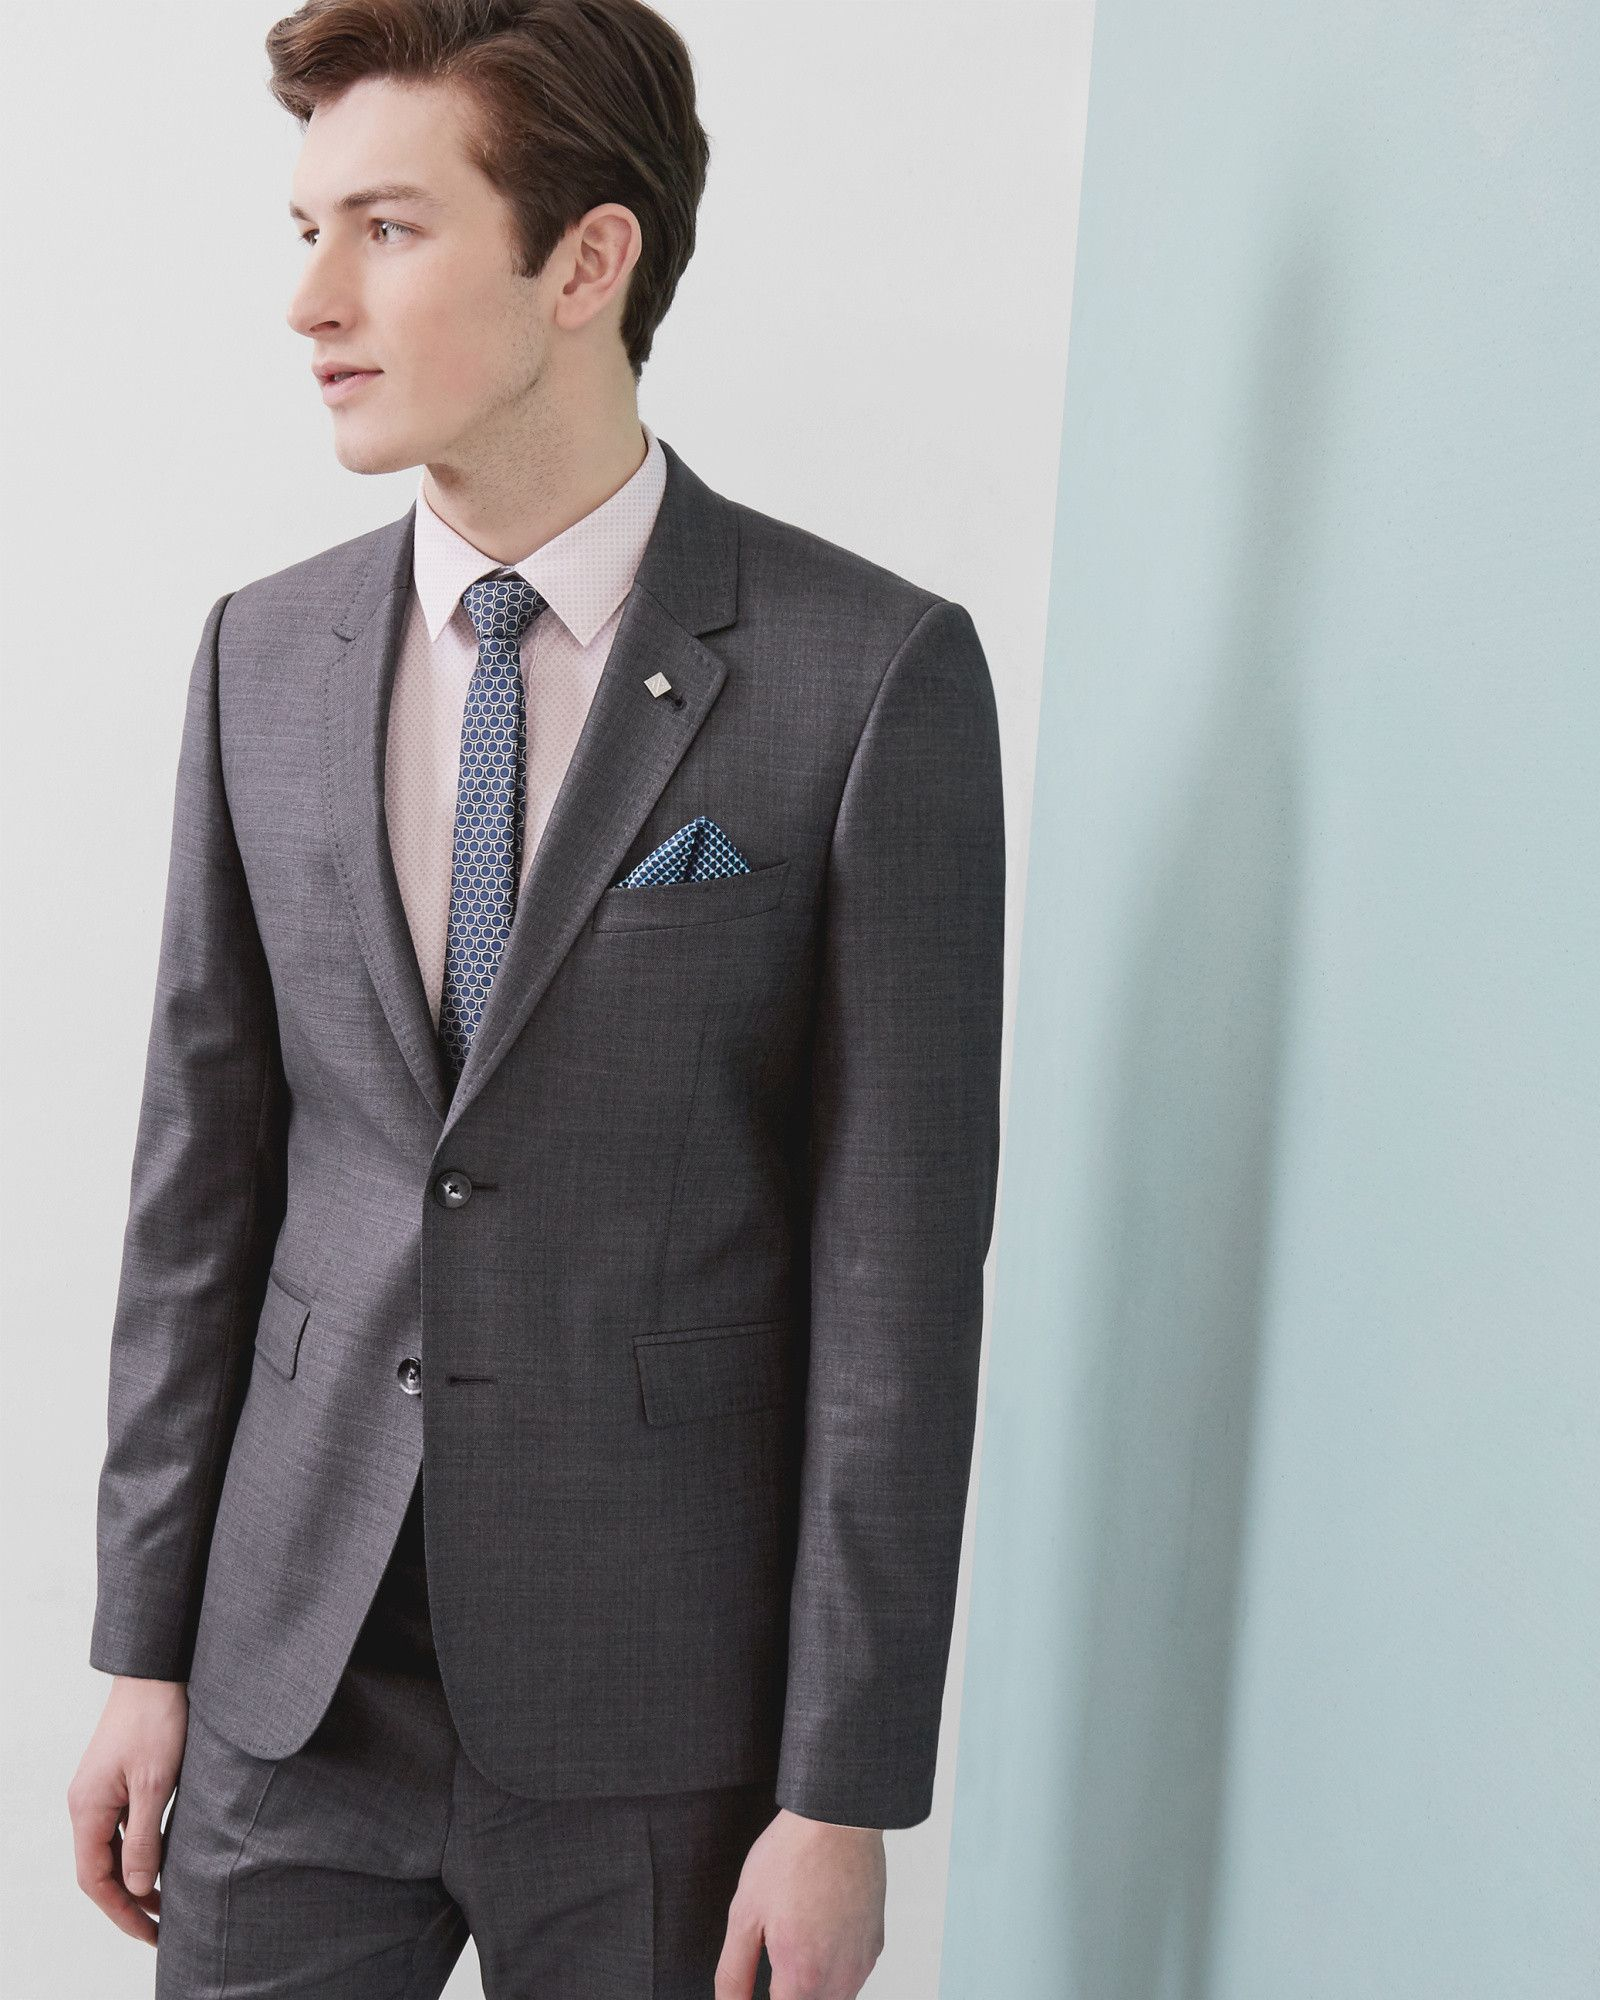 Sharkskin wool jacket - Charcoal | Suits | Ted Baker | Jacket for ...